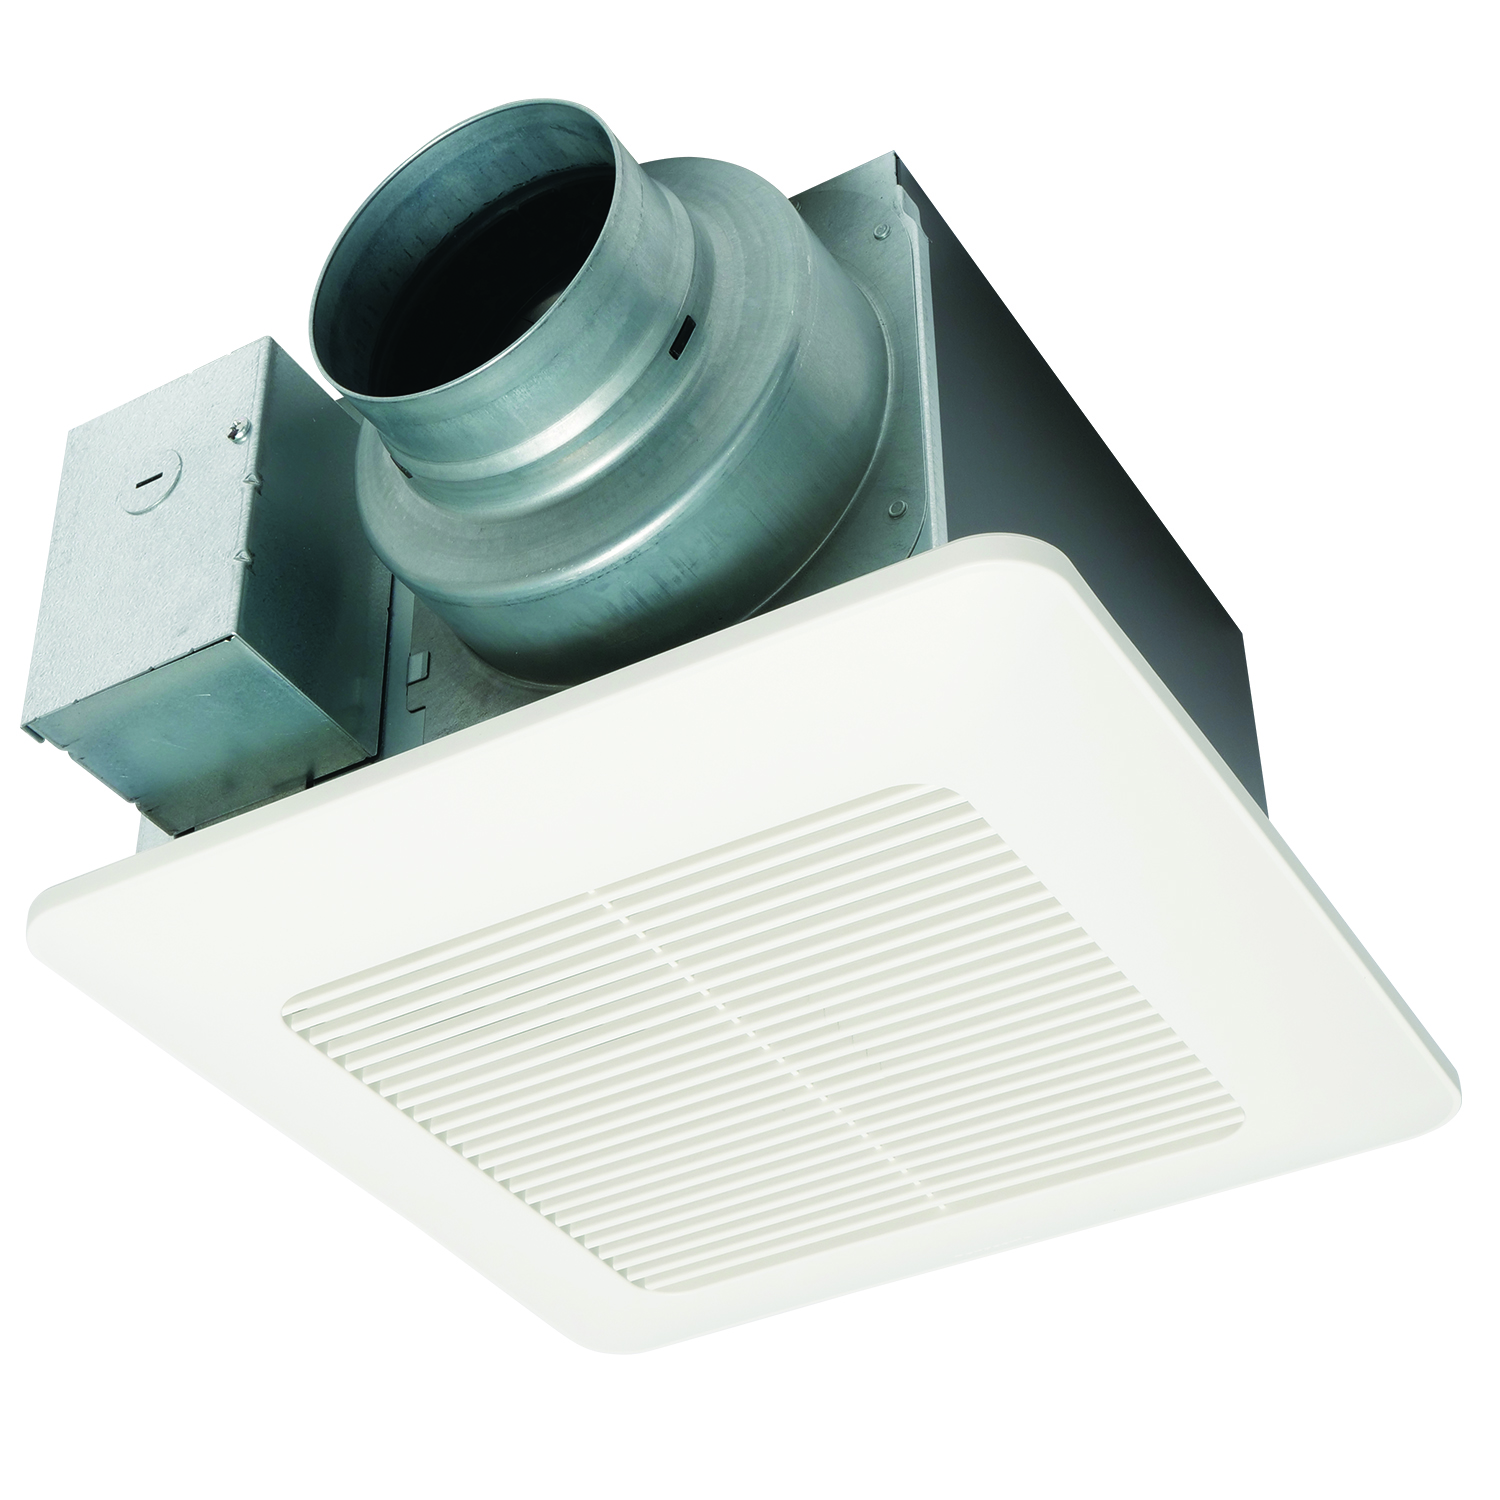 PNS FV-0511VQ1 50-80-110CFM Whisperceiling Exhaust Fan - <.3 Sones - Energy Star - Speed selector (50/80/110)